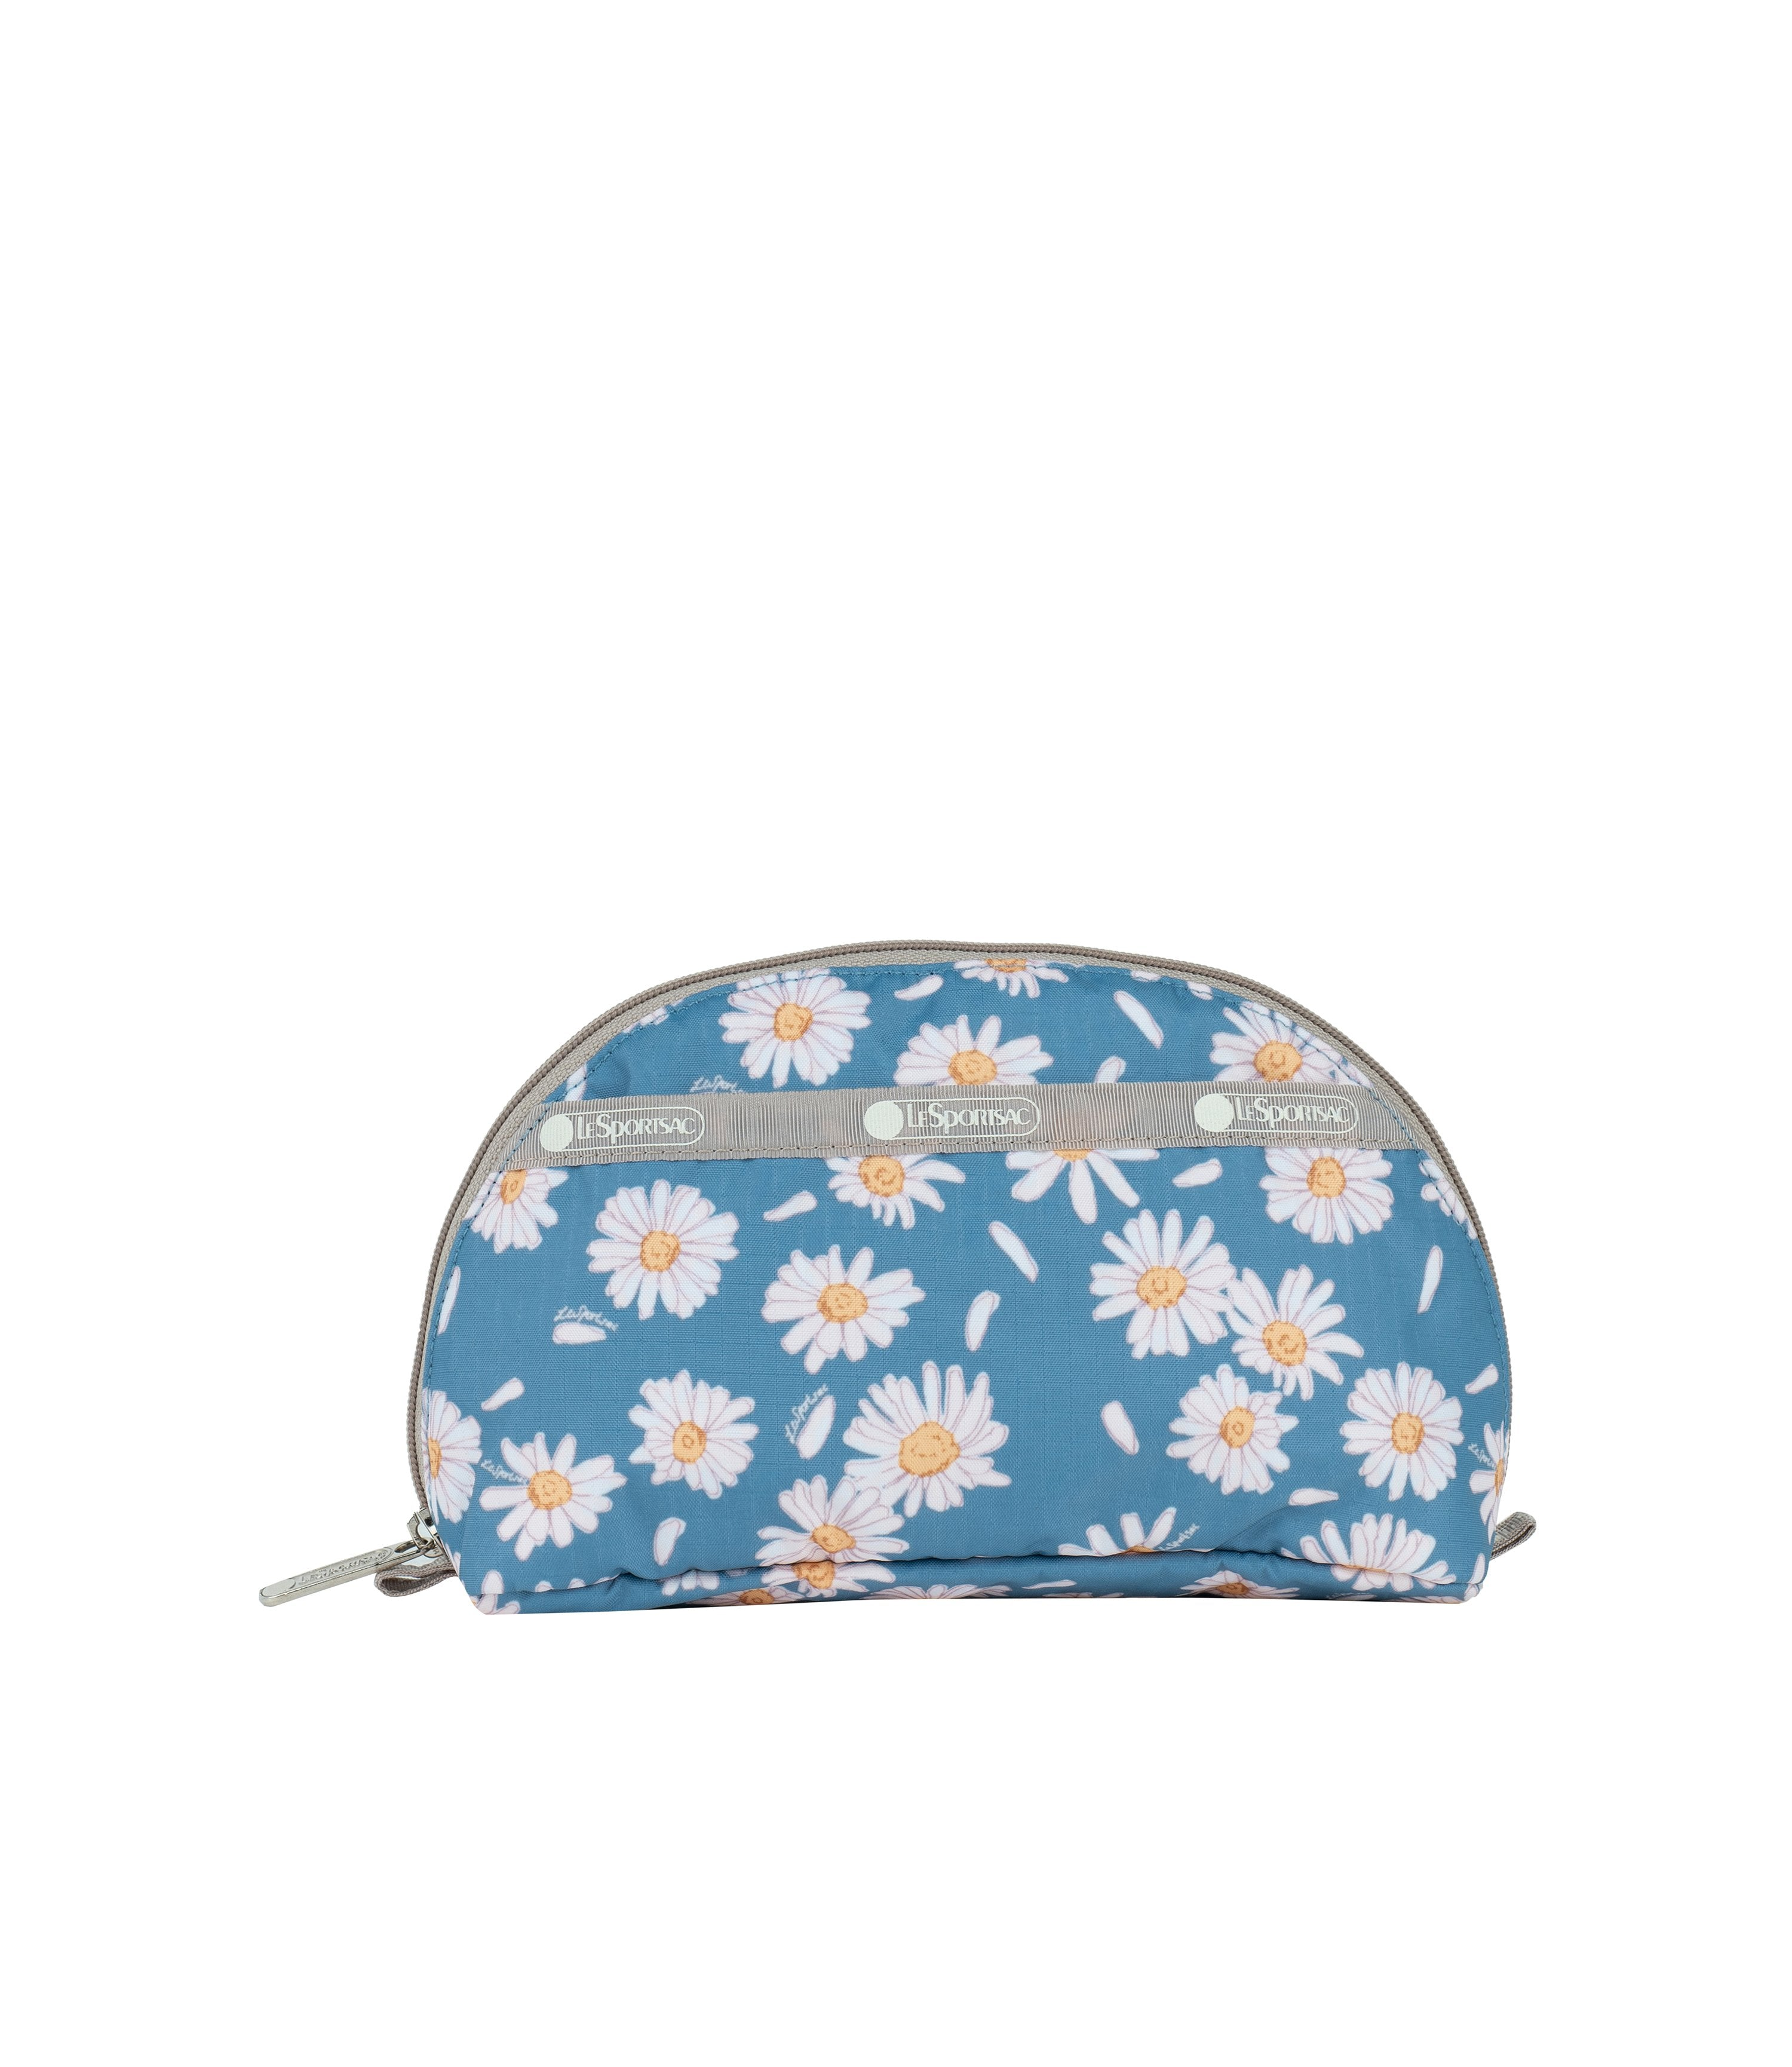 LeSportsac - Accessories - Dome Cosmetic - Daisy Petals print